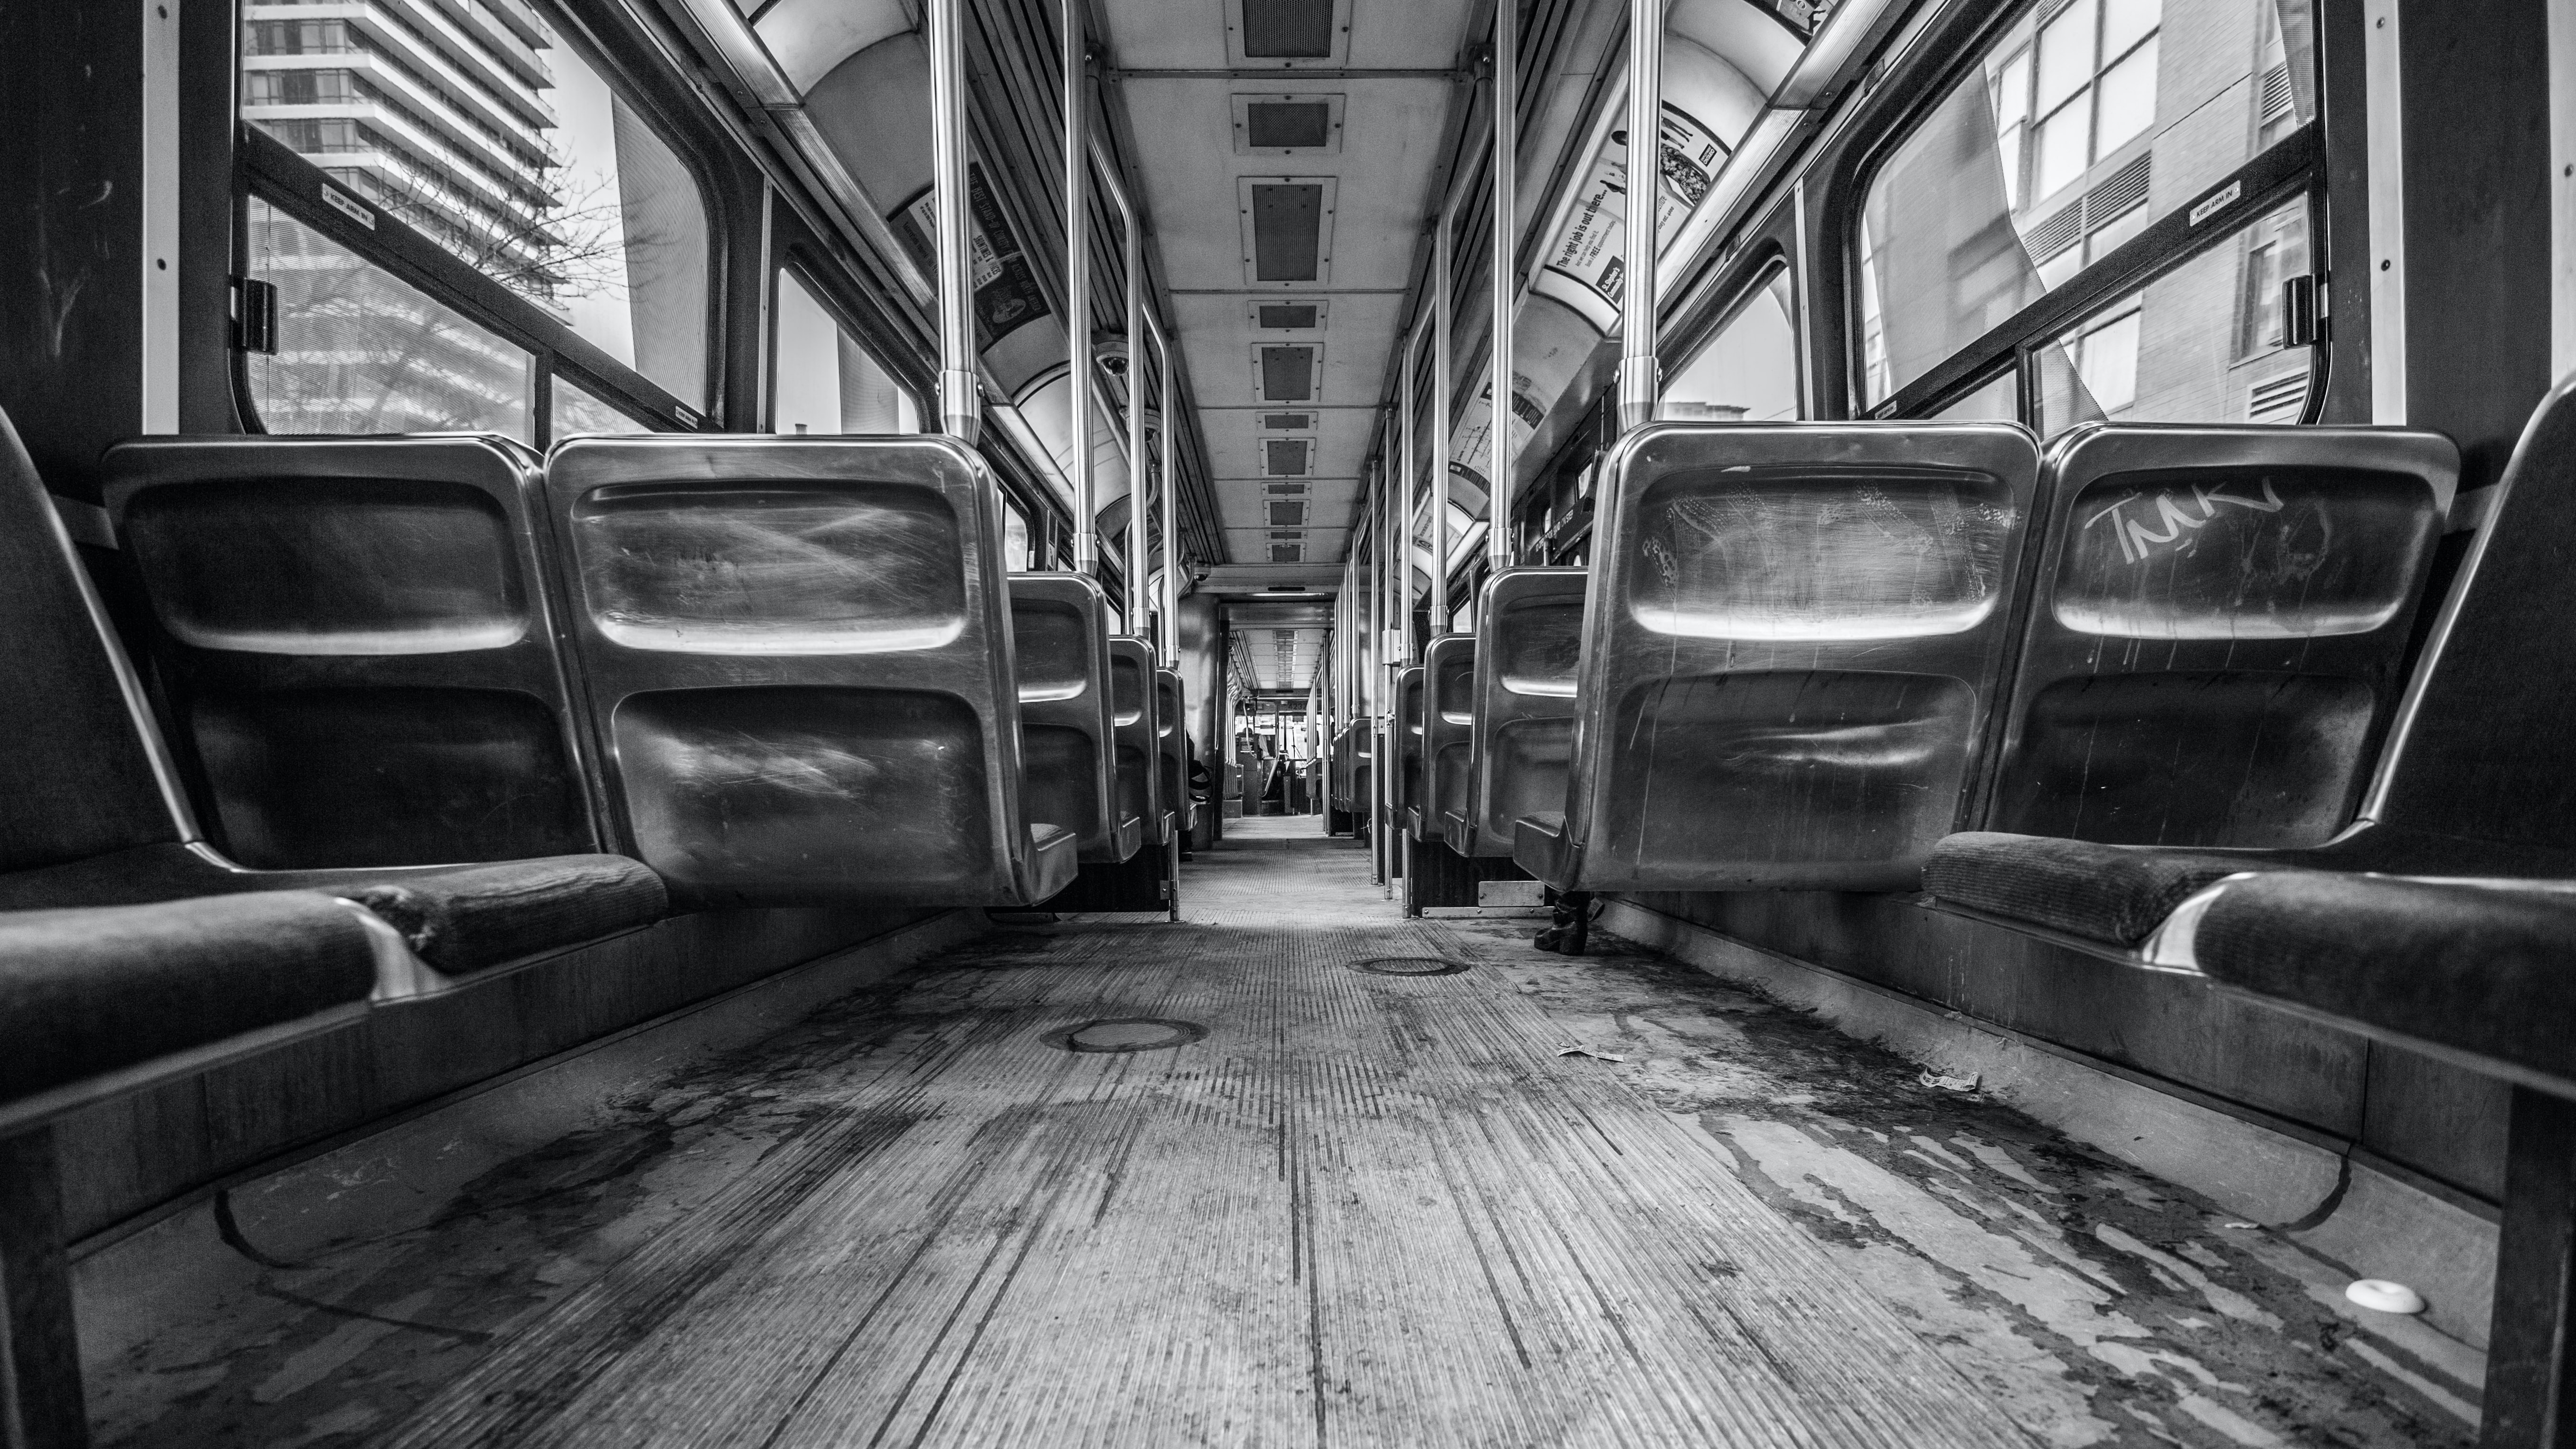 Black and white shot of carriage interior with dirty floor and seating